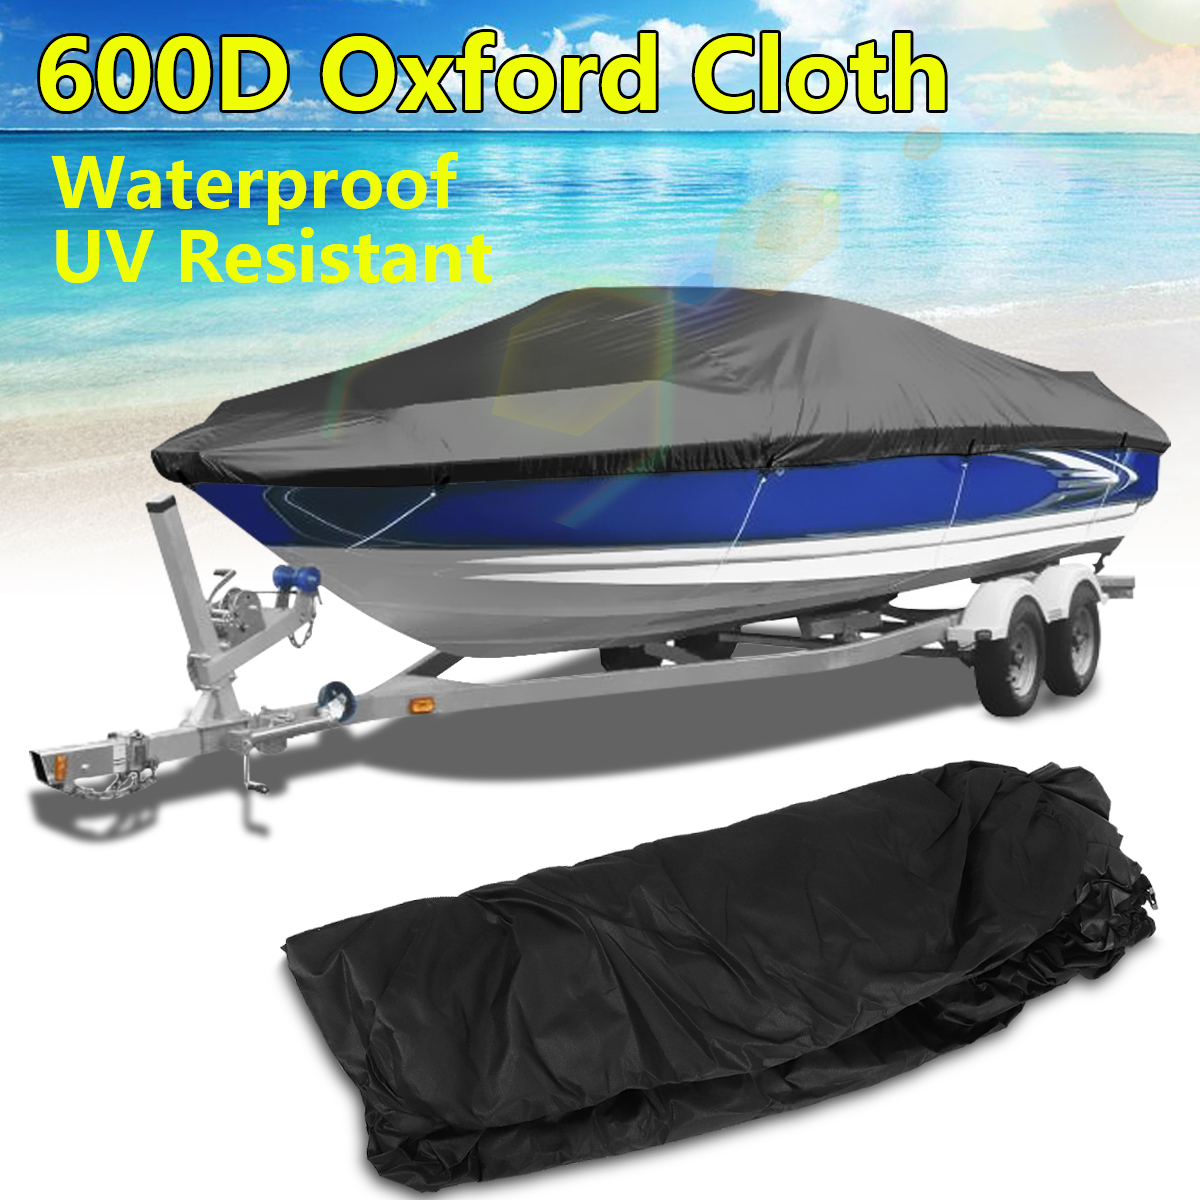 20ft-22ft 600D Boat Cover Heavy Duty Trailerable Outboard Engine Cover Beam 96 M Marine Grade Waterproof anti-UV Protected black heavy duty 14 16ft 600d beam 90inch trailerable marine grade boat cover for yacht boat waterproof anti uv boat accessories